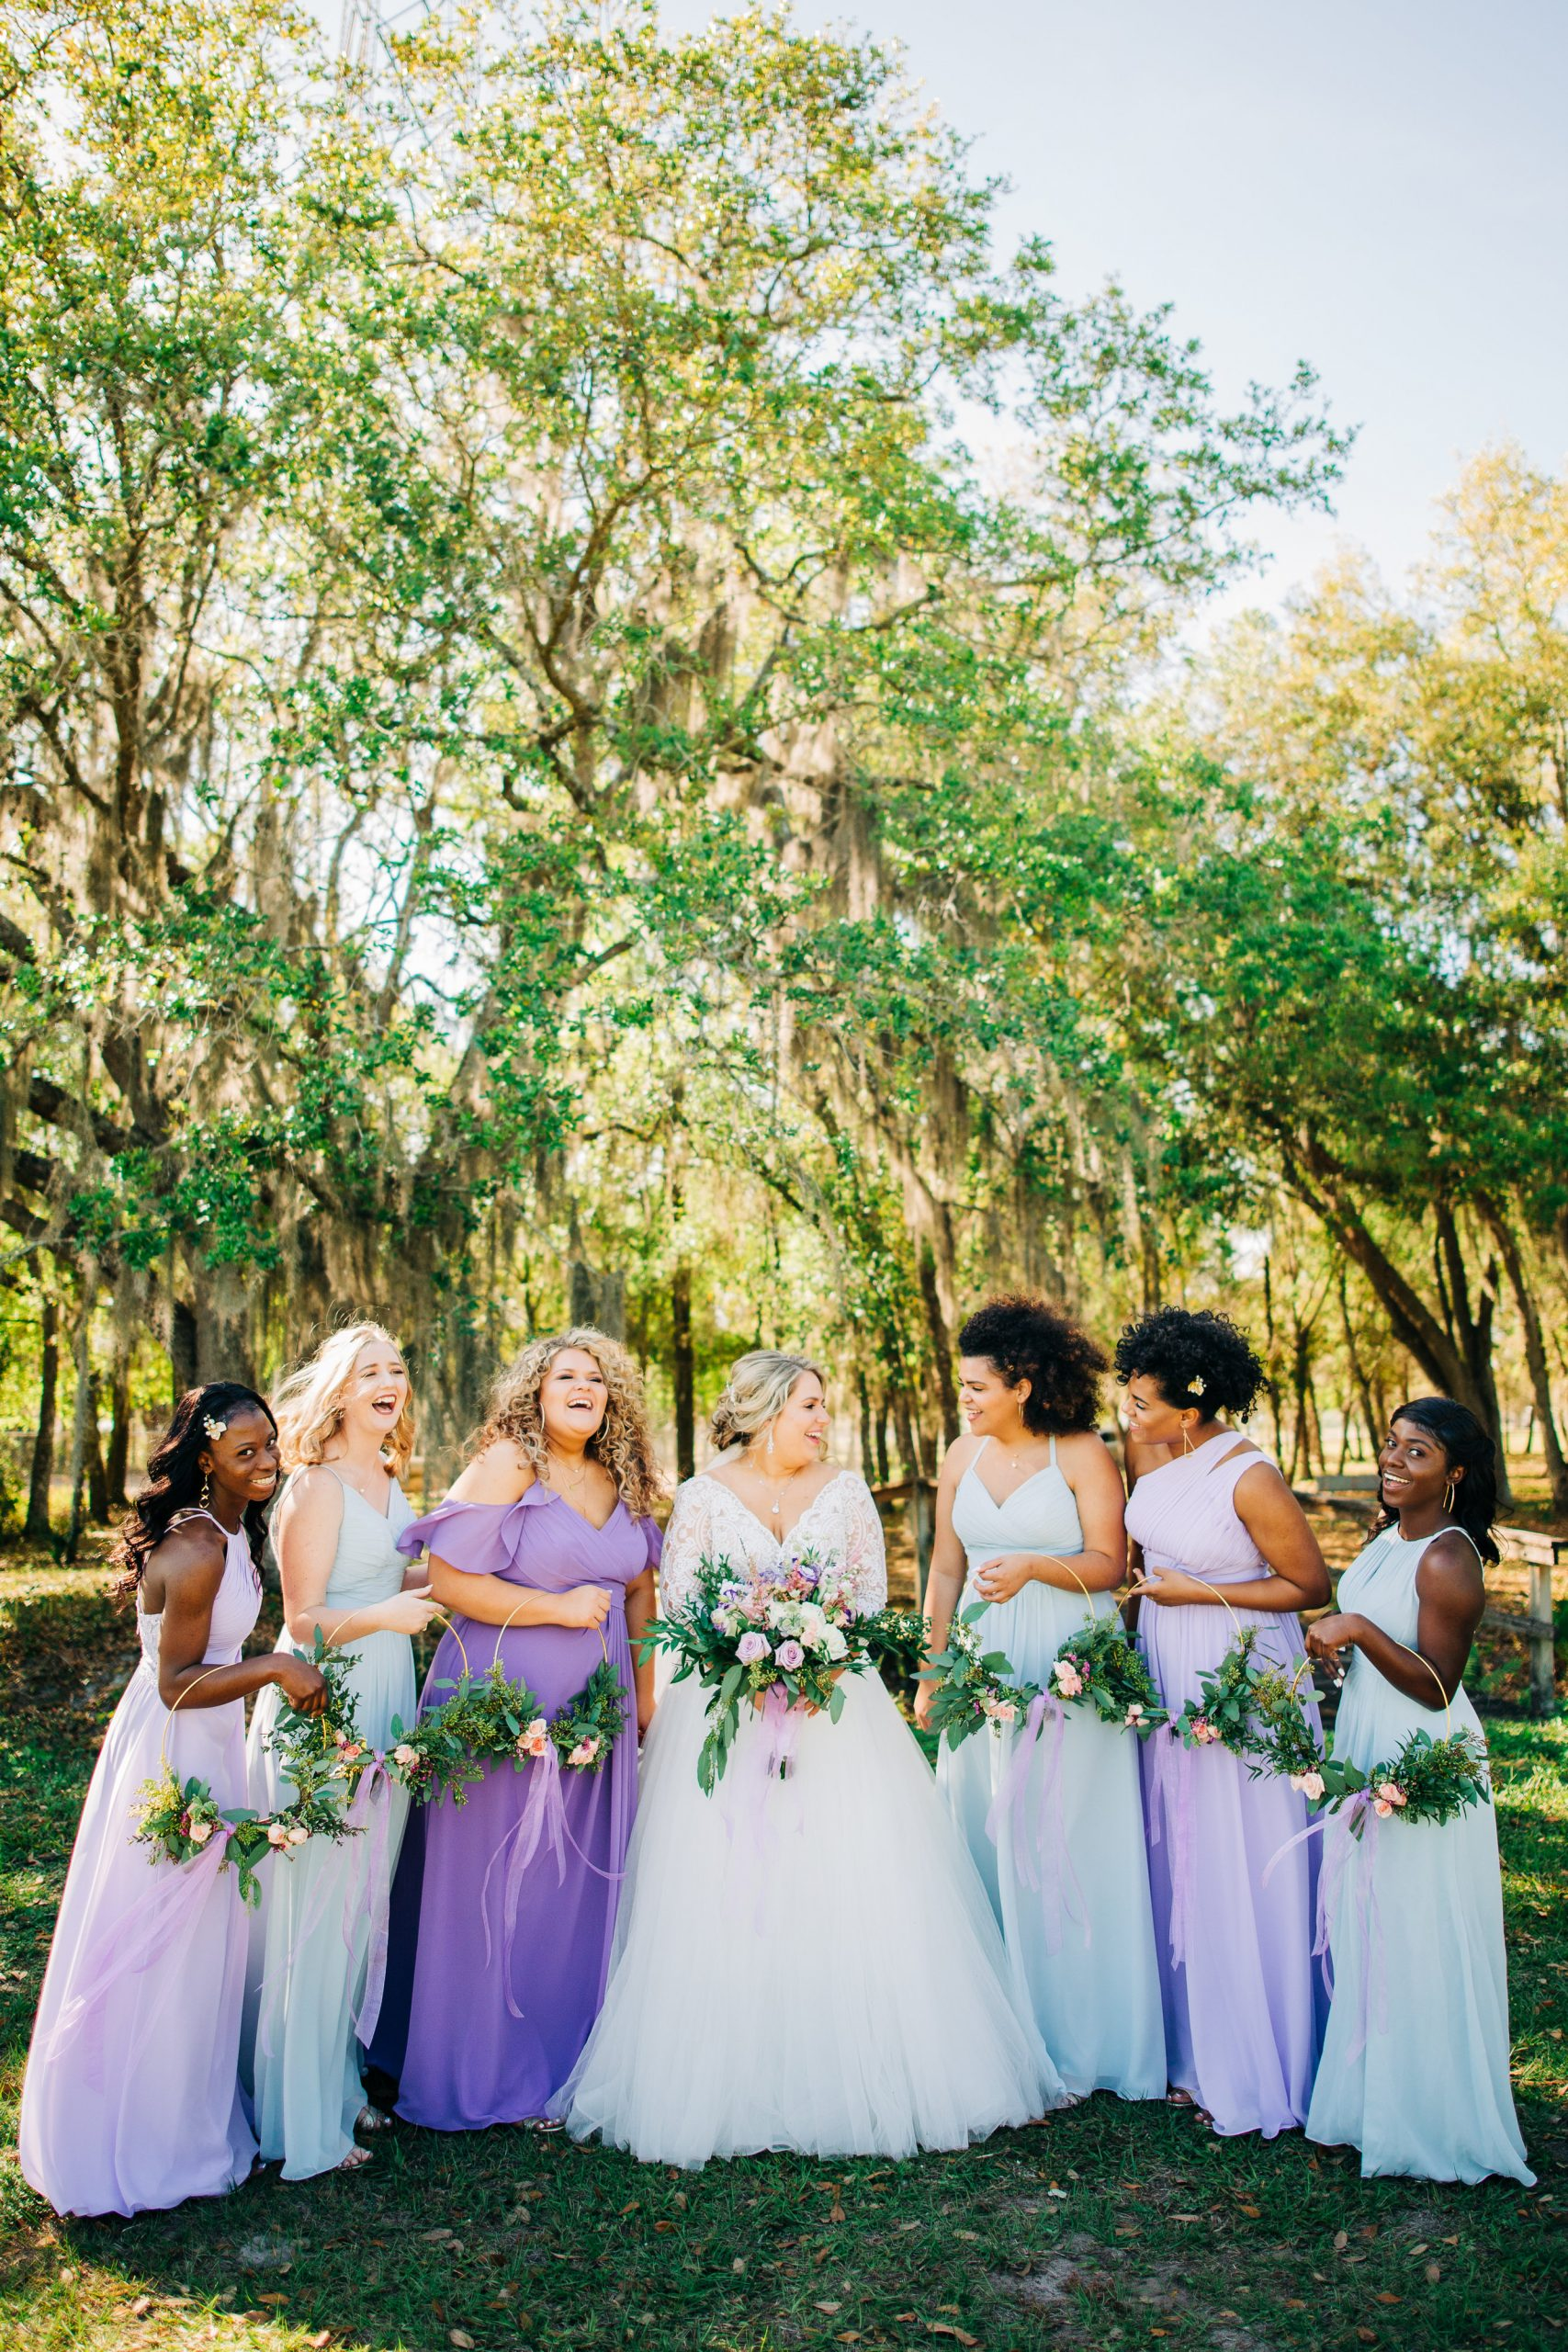 Bride With Bridesmaids Wearing Pastel Purple and Blue Bridesmaid Dresses for Spring Wedding